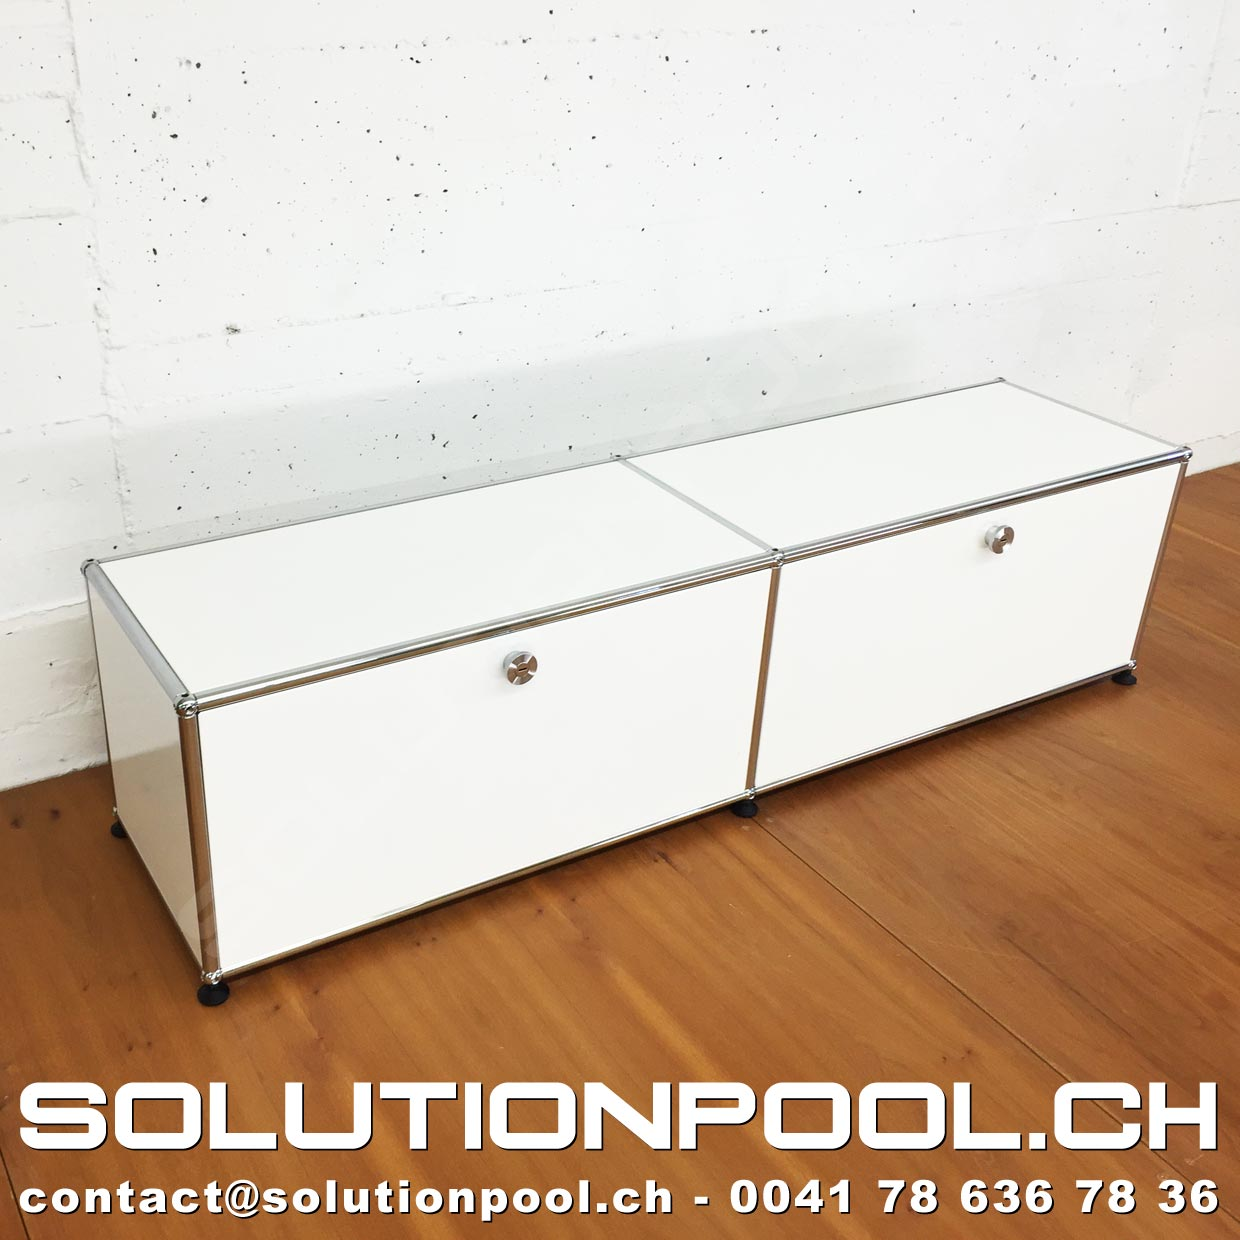 Designermöbel Outlet Zürich Usm Möbel Outlet Occasionen Solutionpool First Class